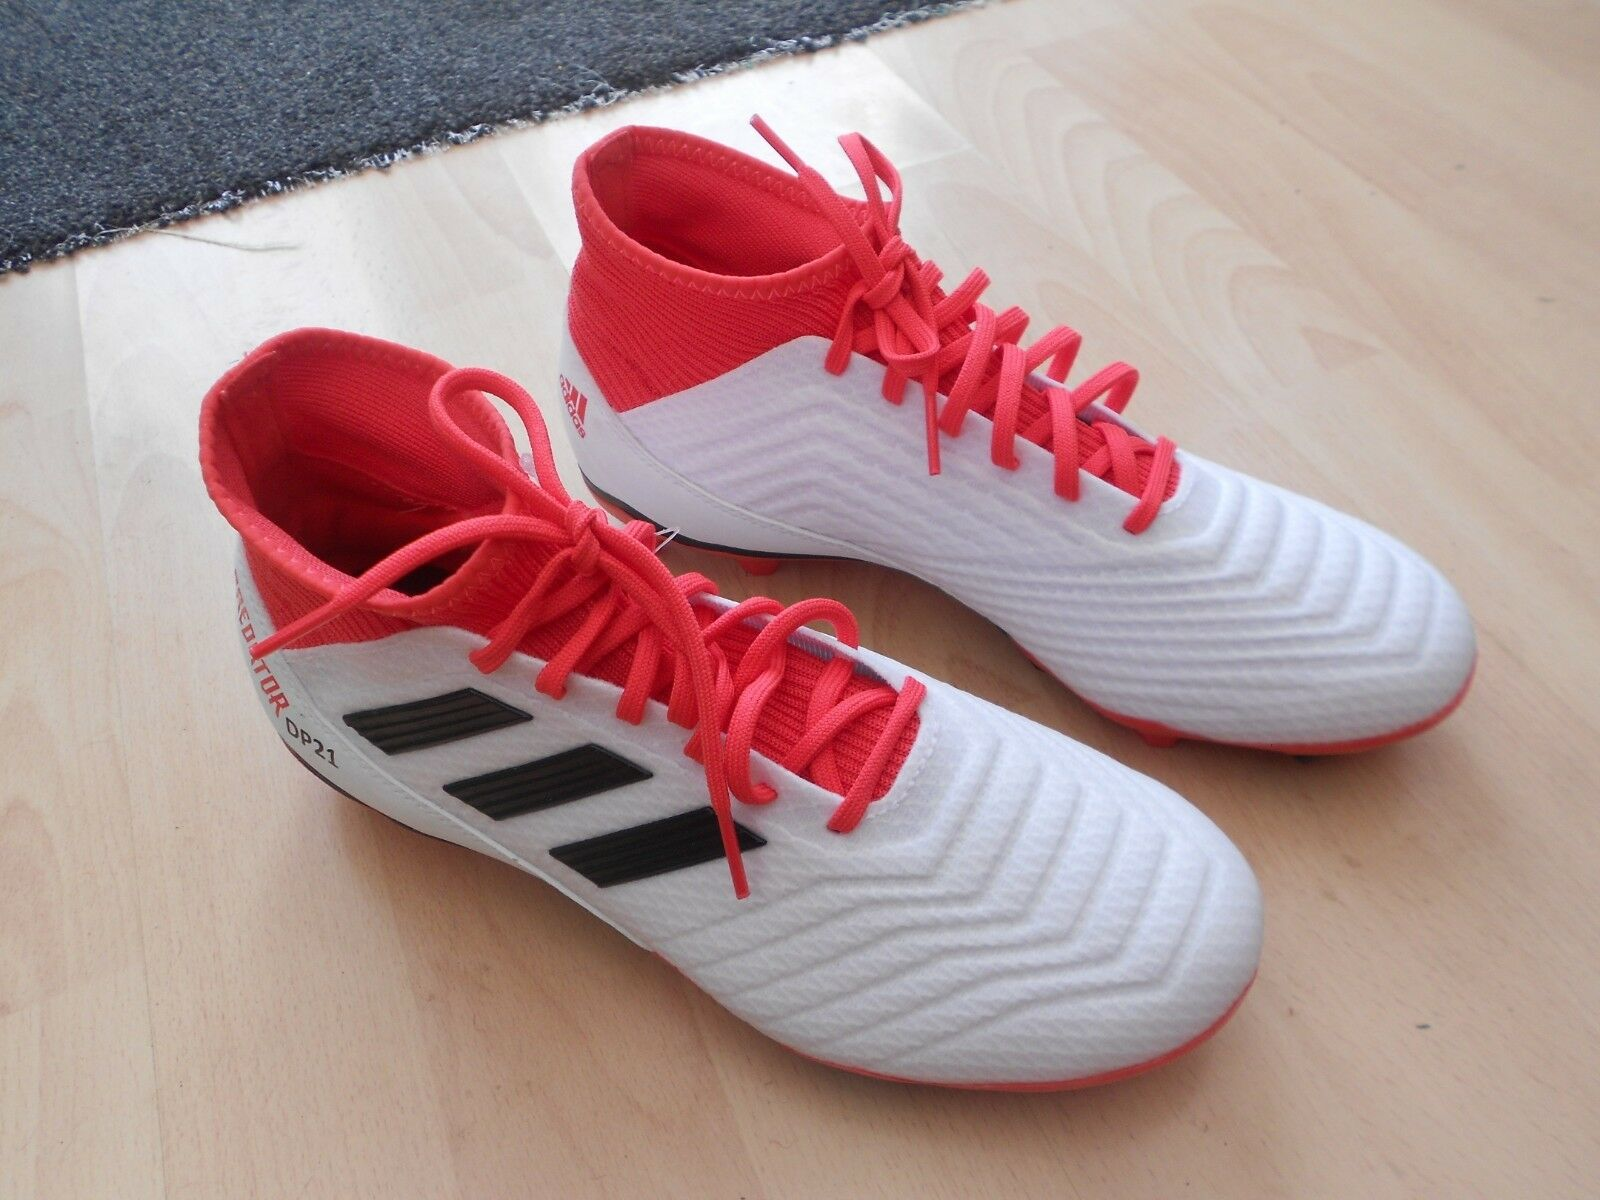 BNWOB ADIDAS PREDATOR 18.3 FG BOOTS -UK SIZE 8 - USED ONLY FOR TRYING ON